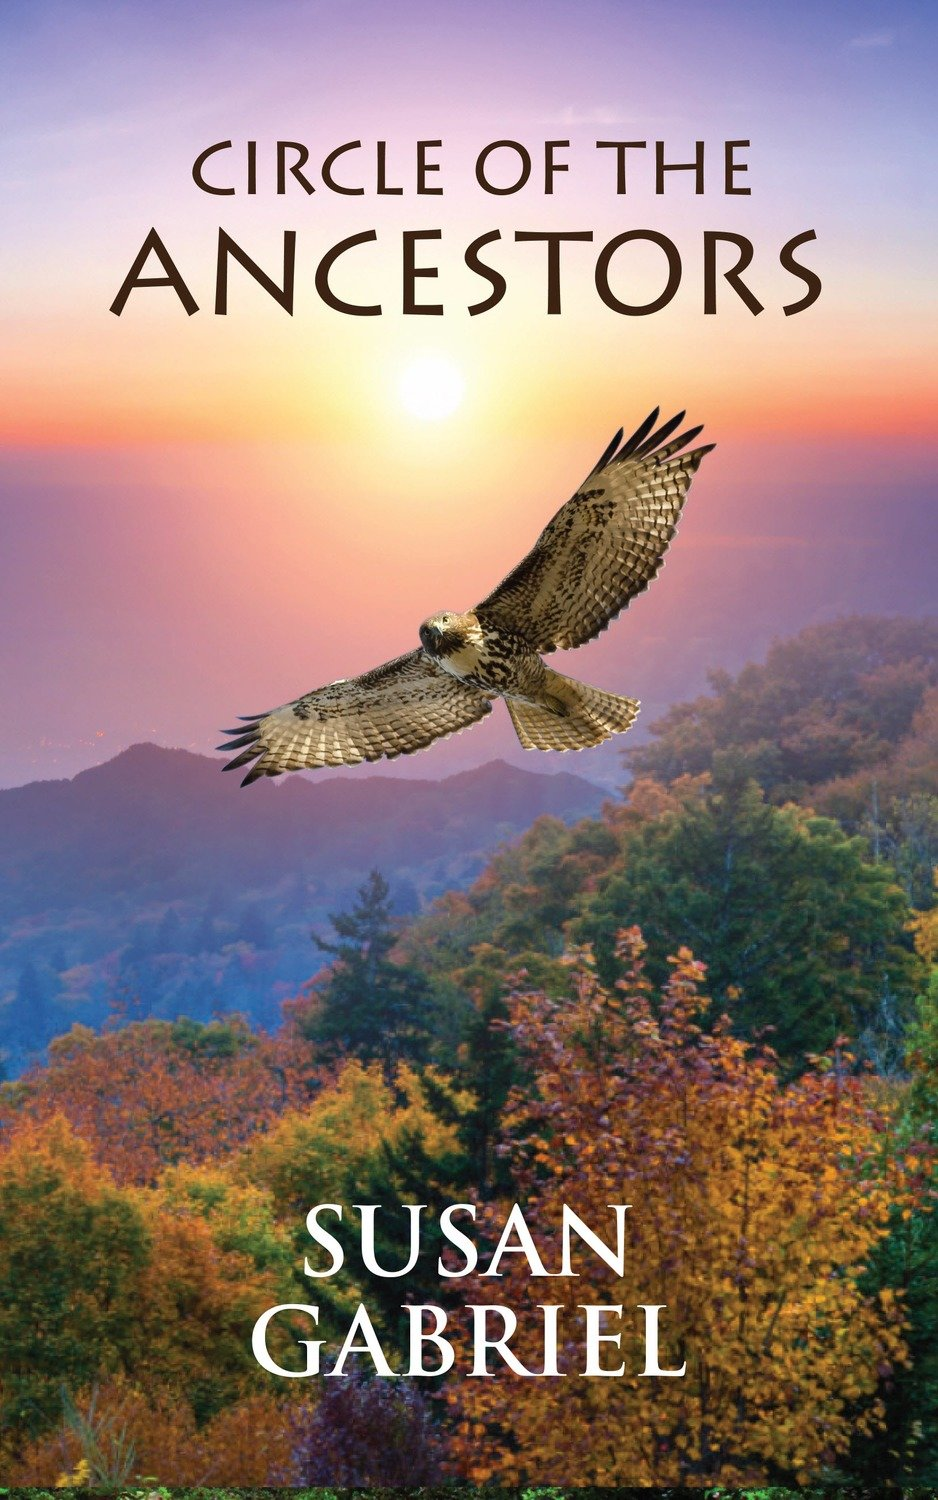 Circle of the Ancestors - paperback, autographed by author